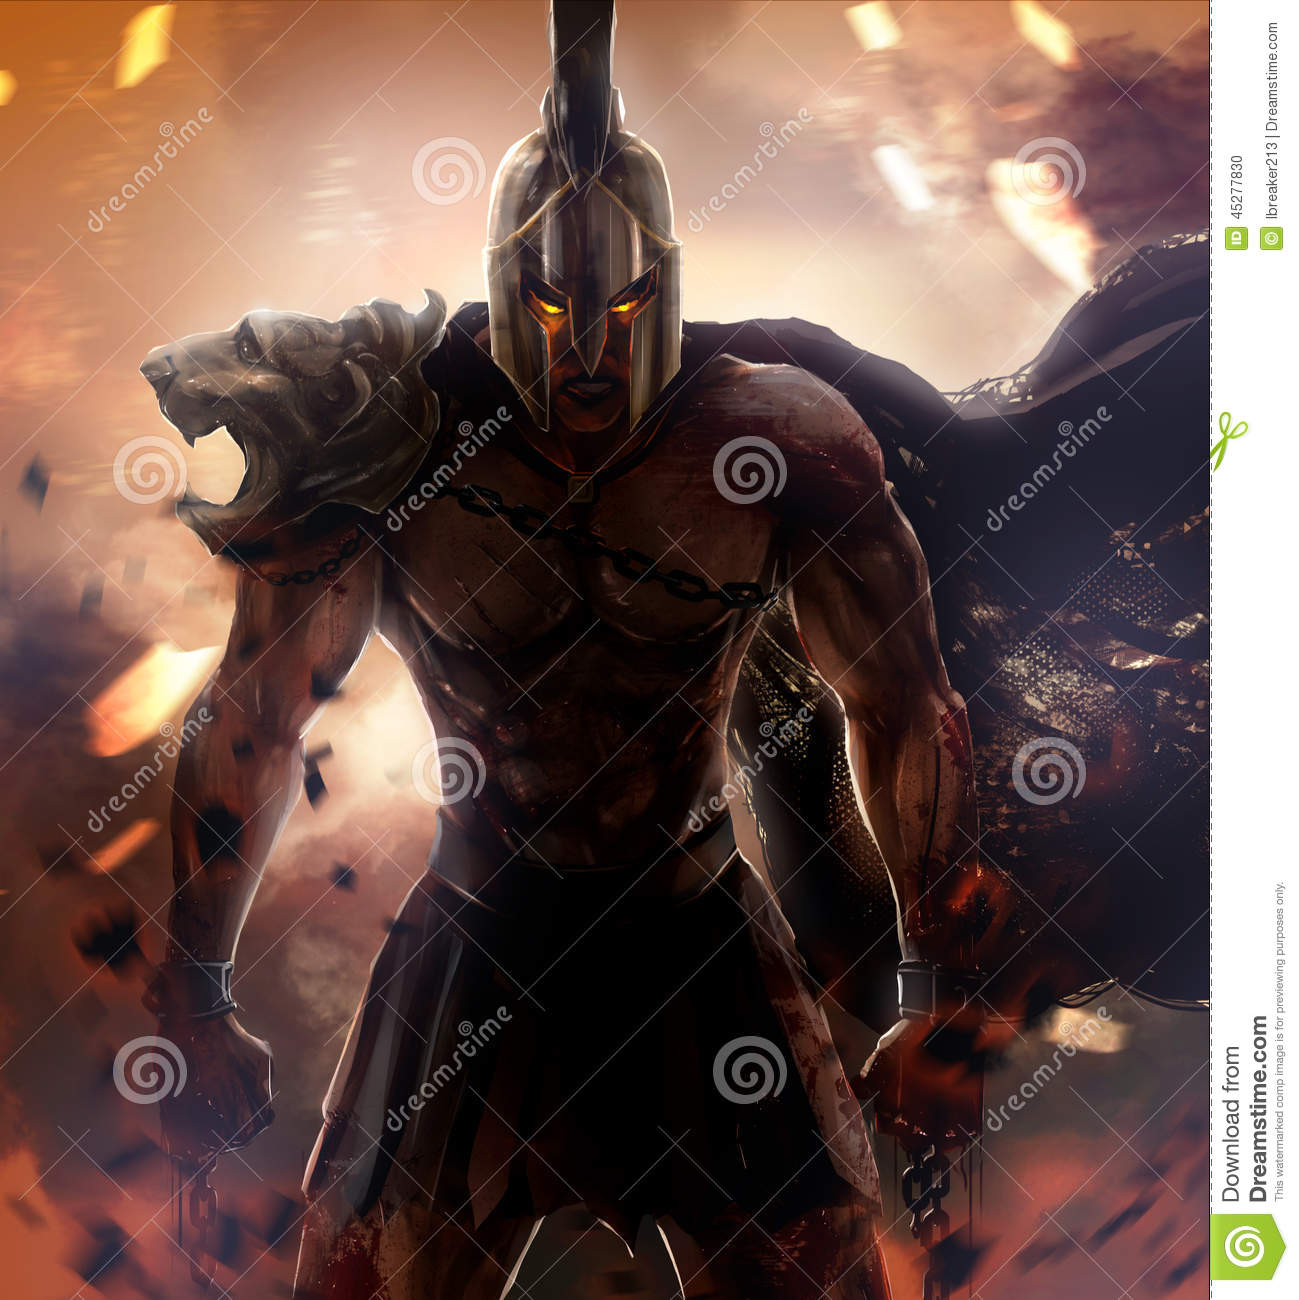 Spartan Warrior Stock Illustration Image 45277830